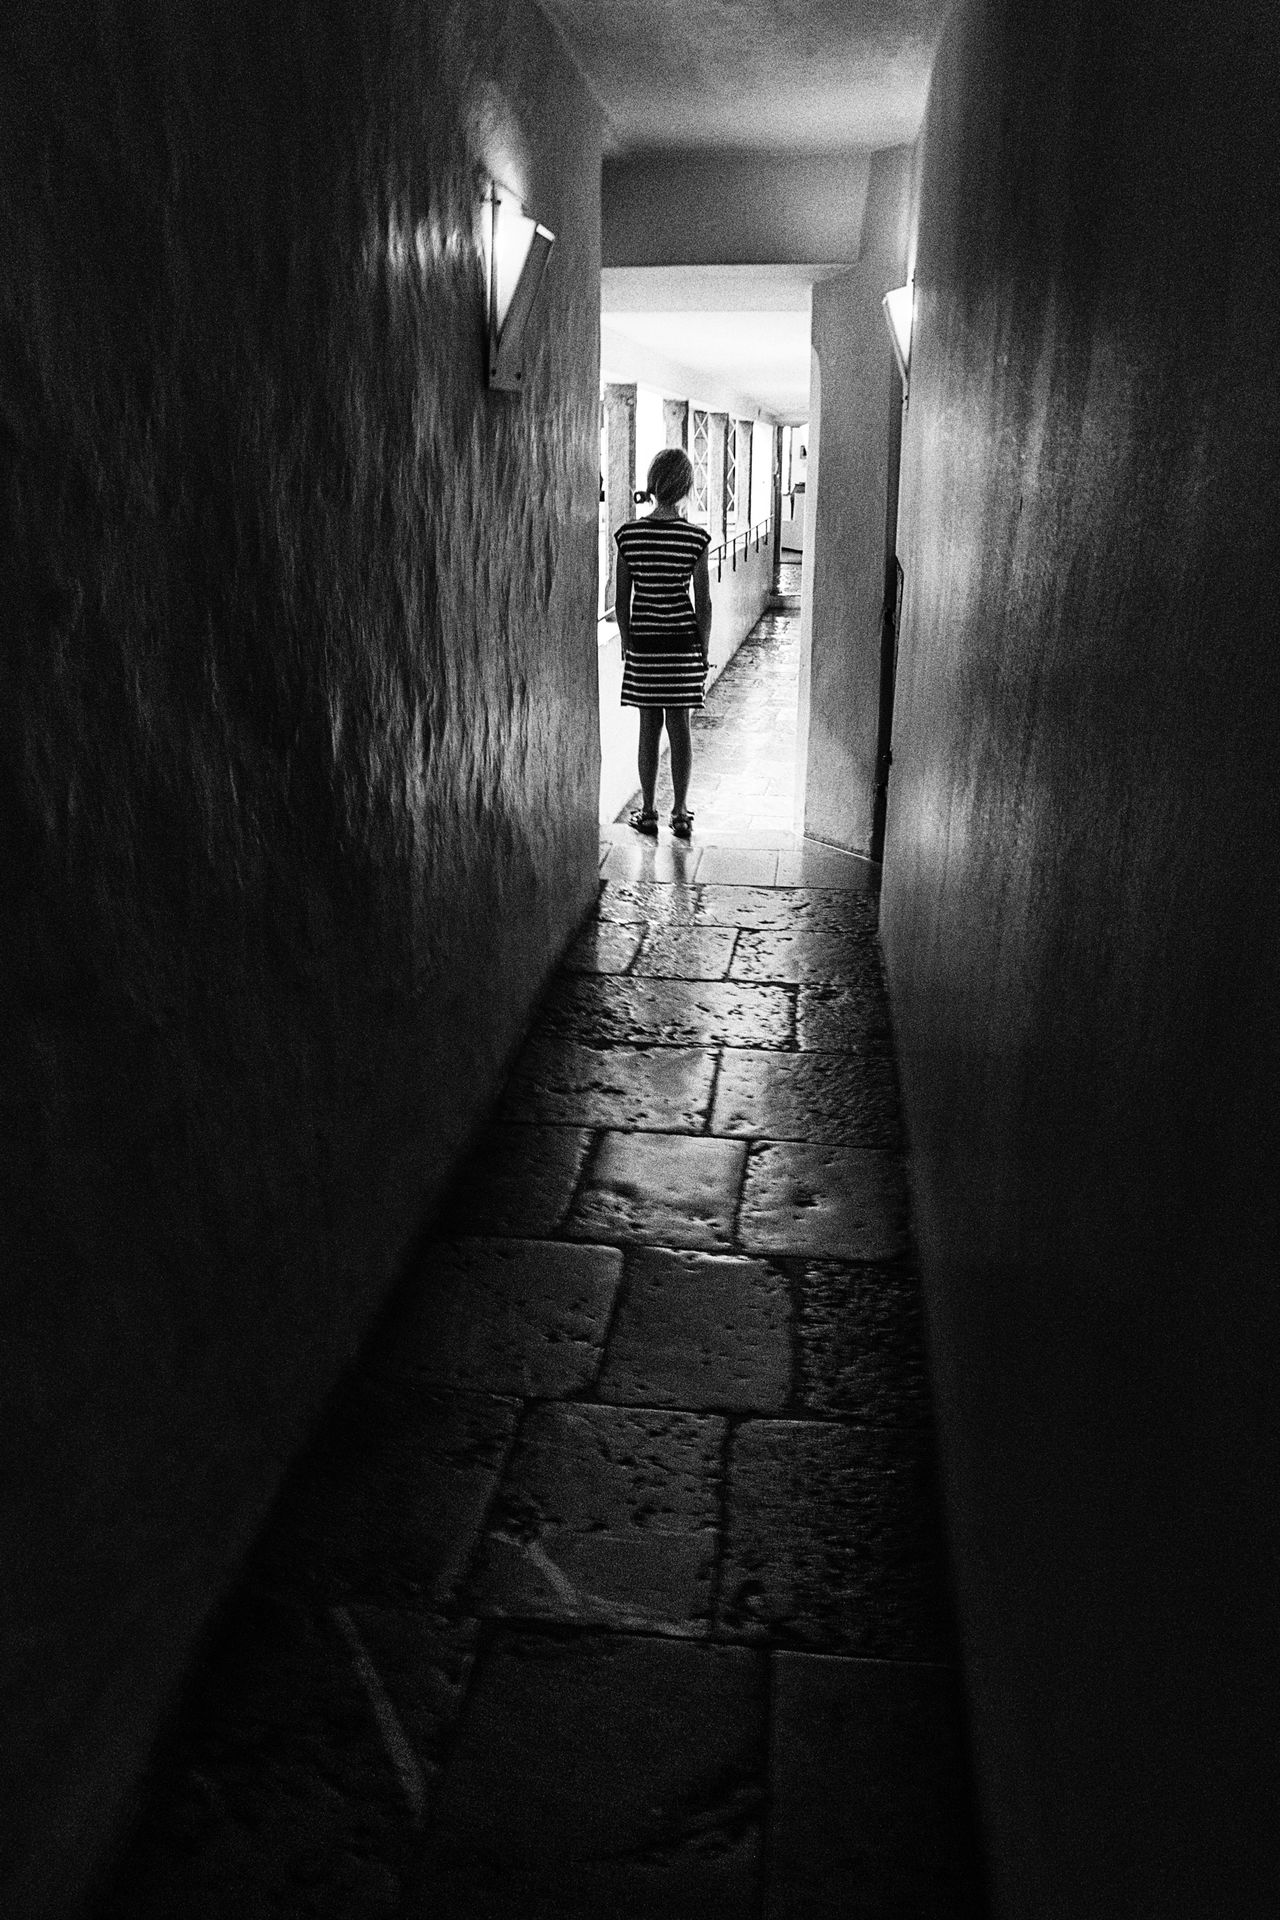 Silentium! In the footsteps of Wolf Haas and W. A. Mozart Salzburg, Austria MozartGeburthaus Mozart Salzburg Mozartstadt My Favorite Place Battle Of The Cities EyeEm Gallery Eyeem Market Portrait Of A Child From My Point Of View Black & White Black And White Photography Black And White Collection  Salzburg Mozartstadt Black And White Monochrome Photography light and reflection Snap a Stranger Welcome To Black The Portraitist - 2017 EyeEm Awards The Street Photographer - 2017 EyeEm Awards